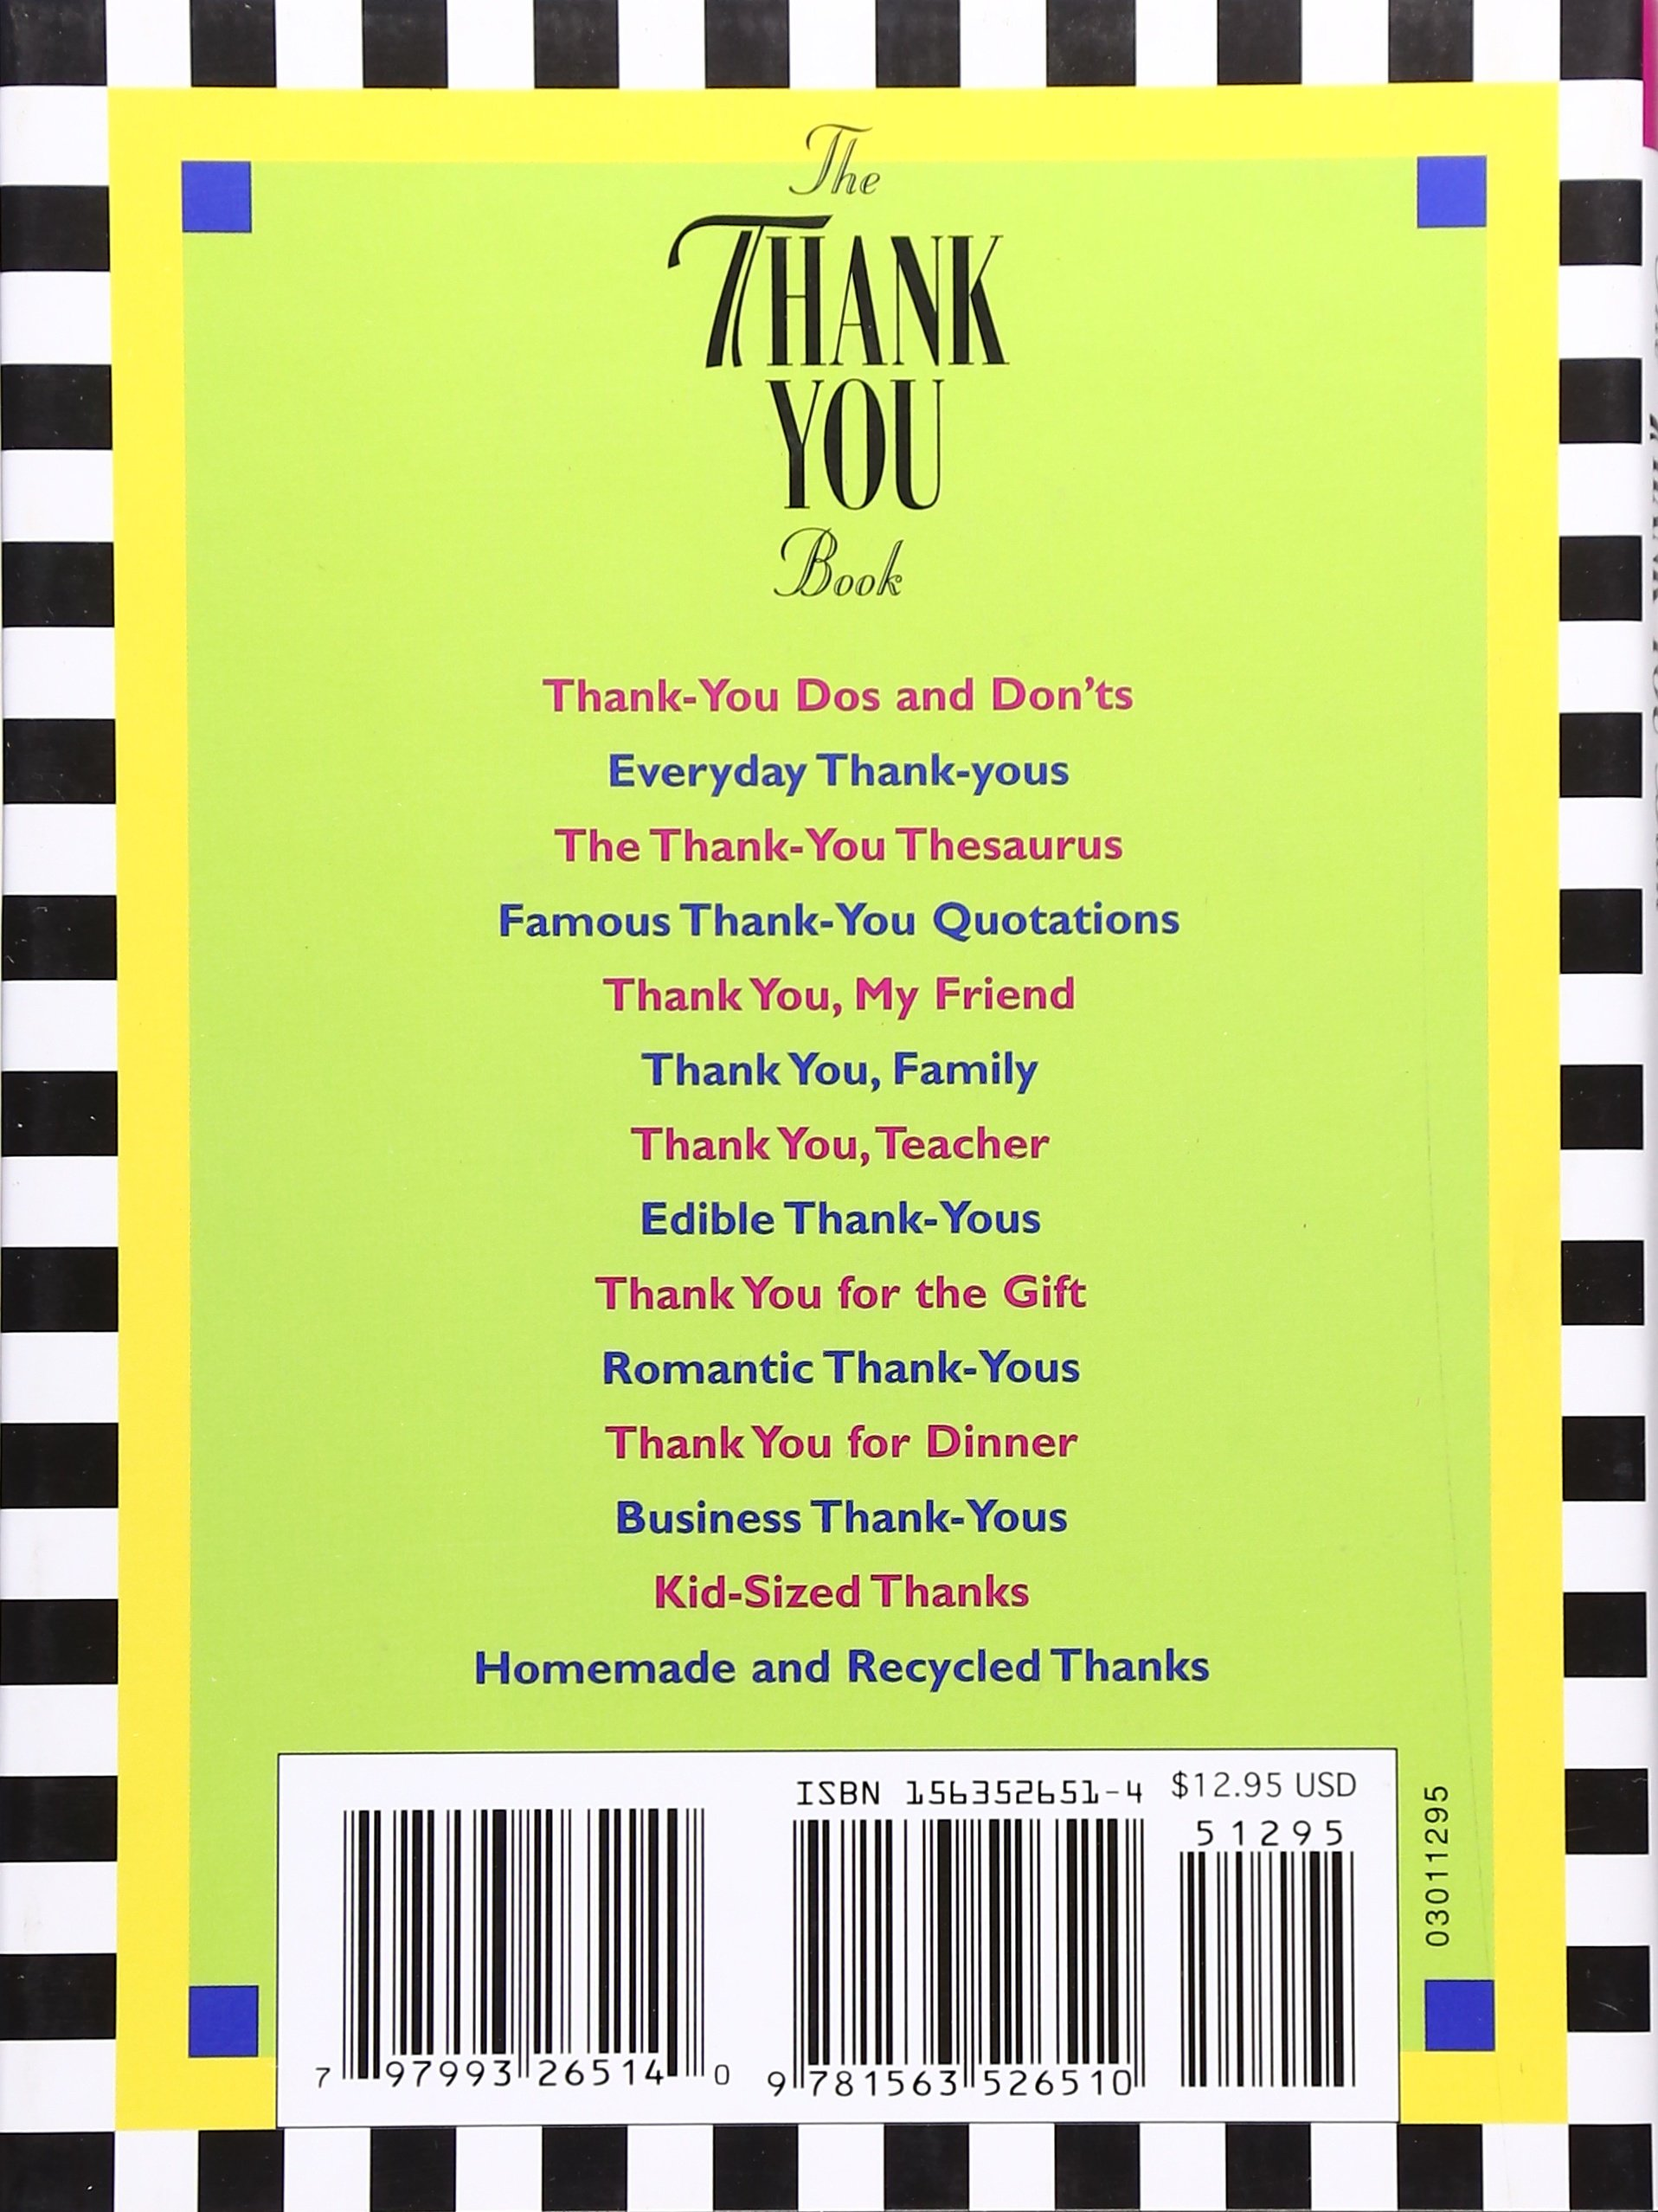 The Thank You Book: Hundreds of Clever, Meaningful, and Purposeful Ways to Say  Thank You: Robyn Freedman Spizman: 0797993265140: Amazon.com: Books